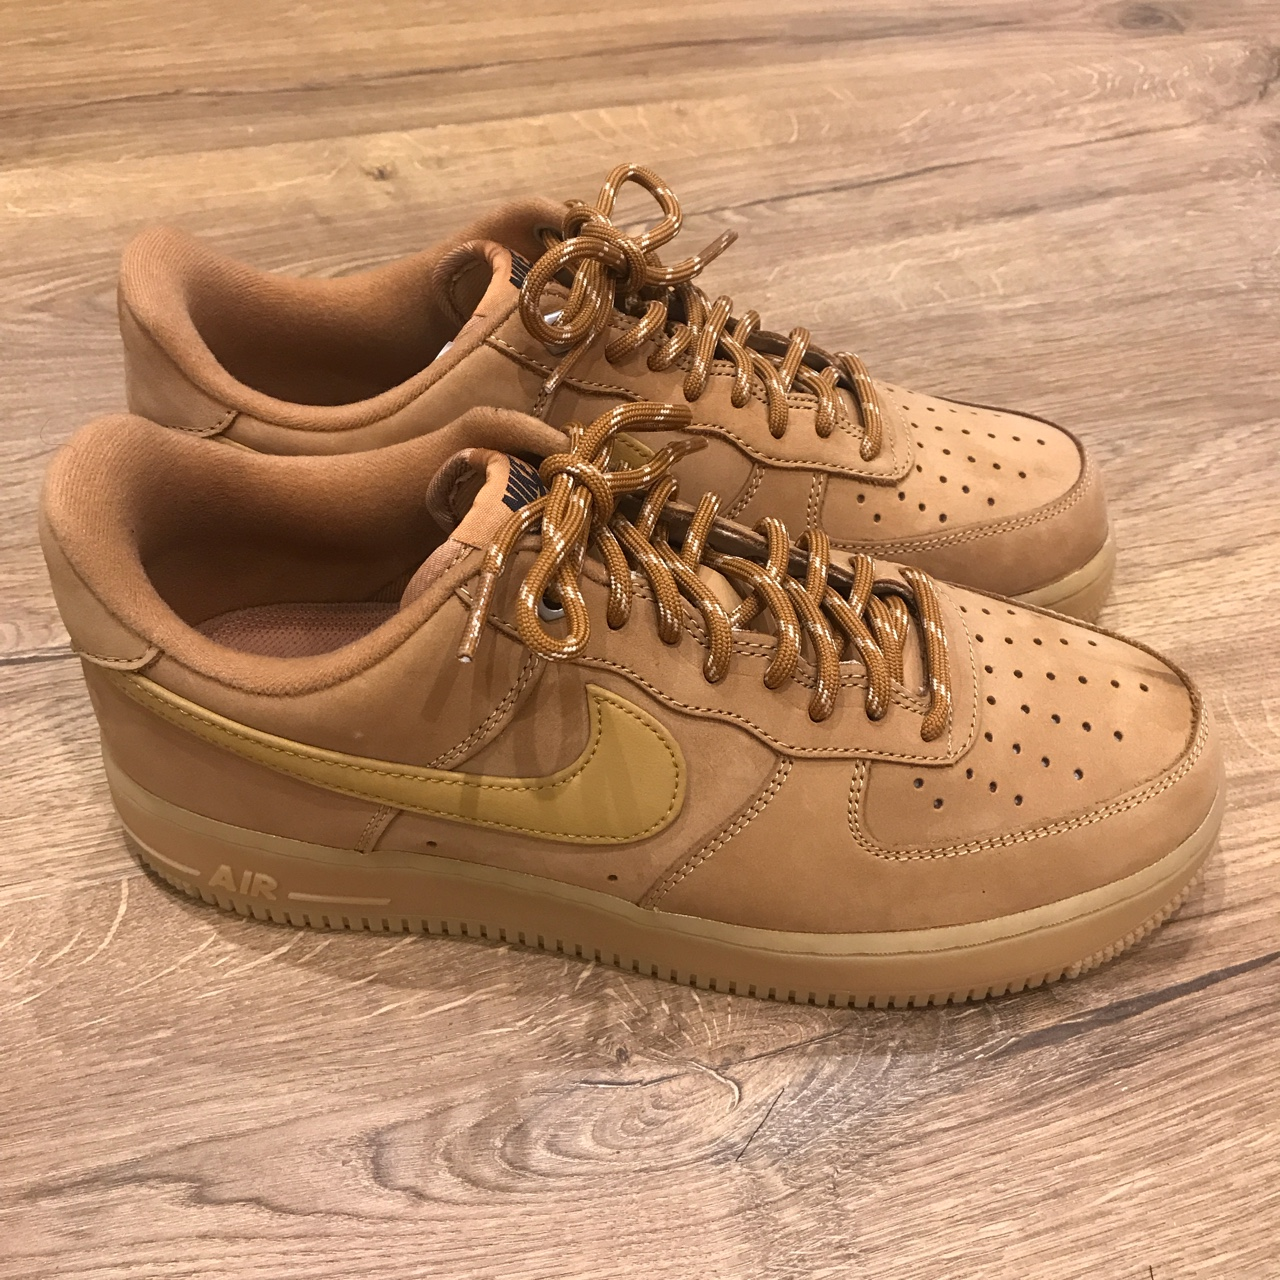 Nike Air Force 1 '07 WB Low Trainer